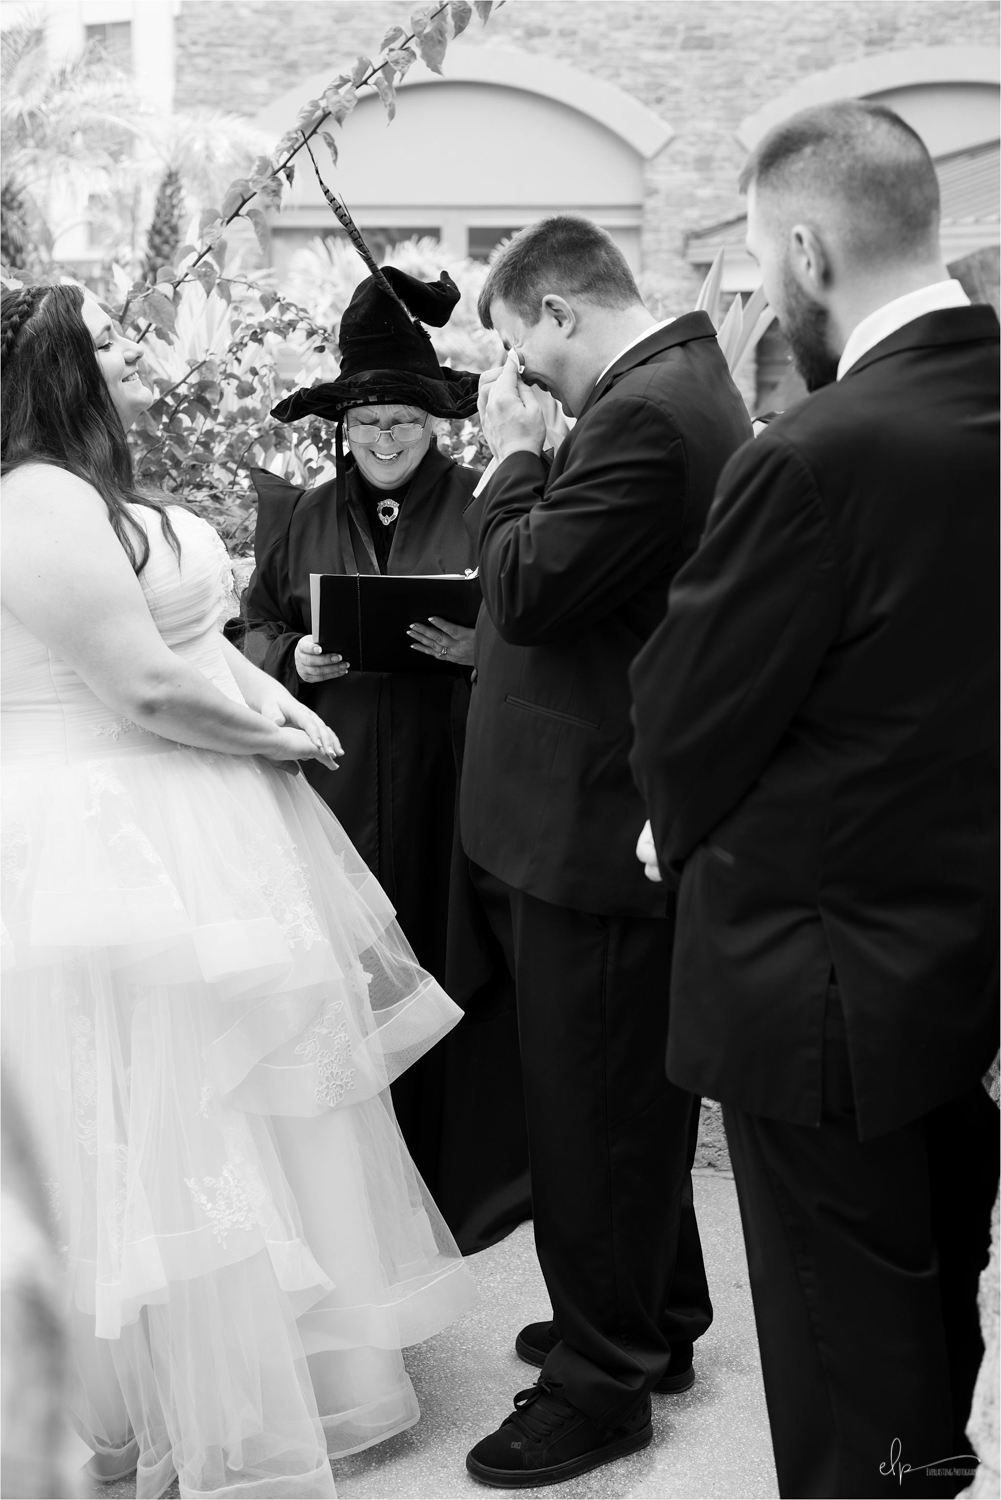 Wedding ceremony by Getting Married in Florida.